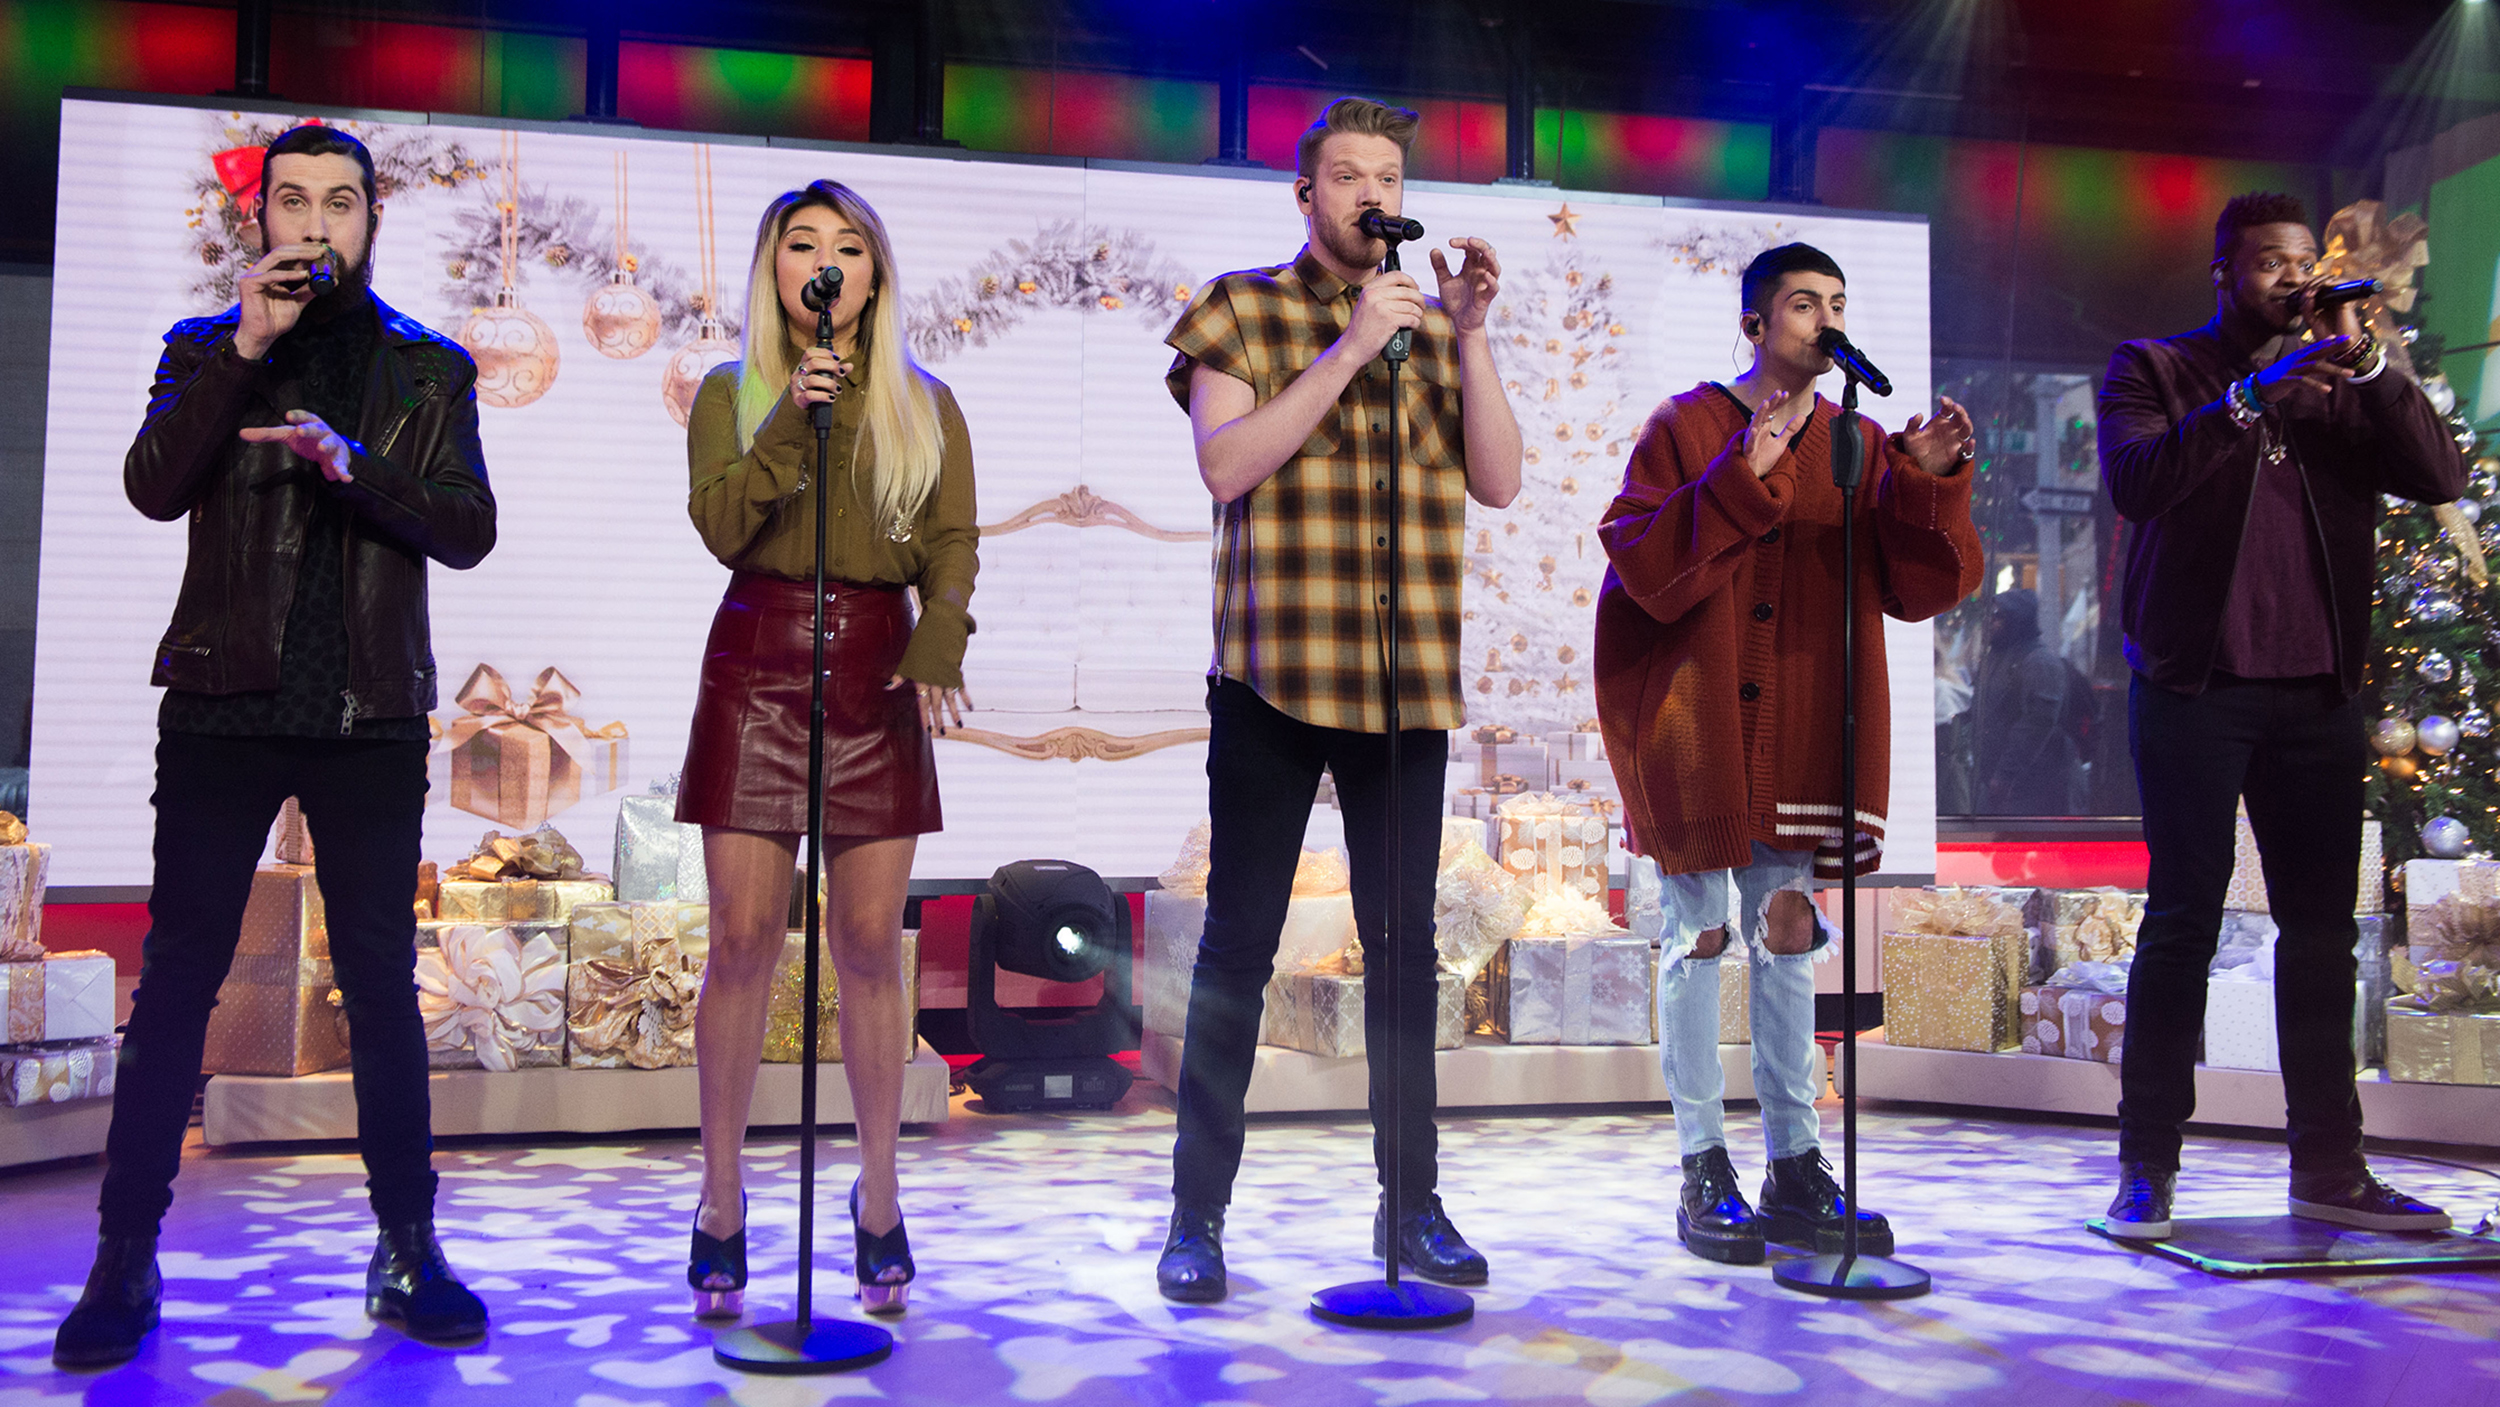 Pentatonix brings Christmas cheer to TODAY with amazing